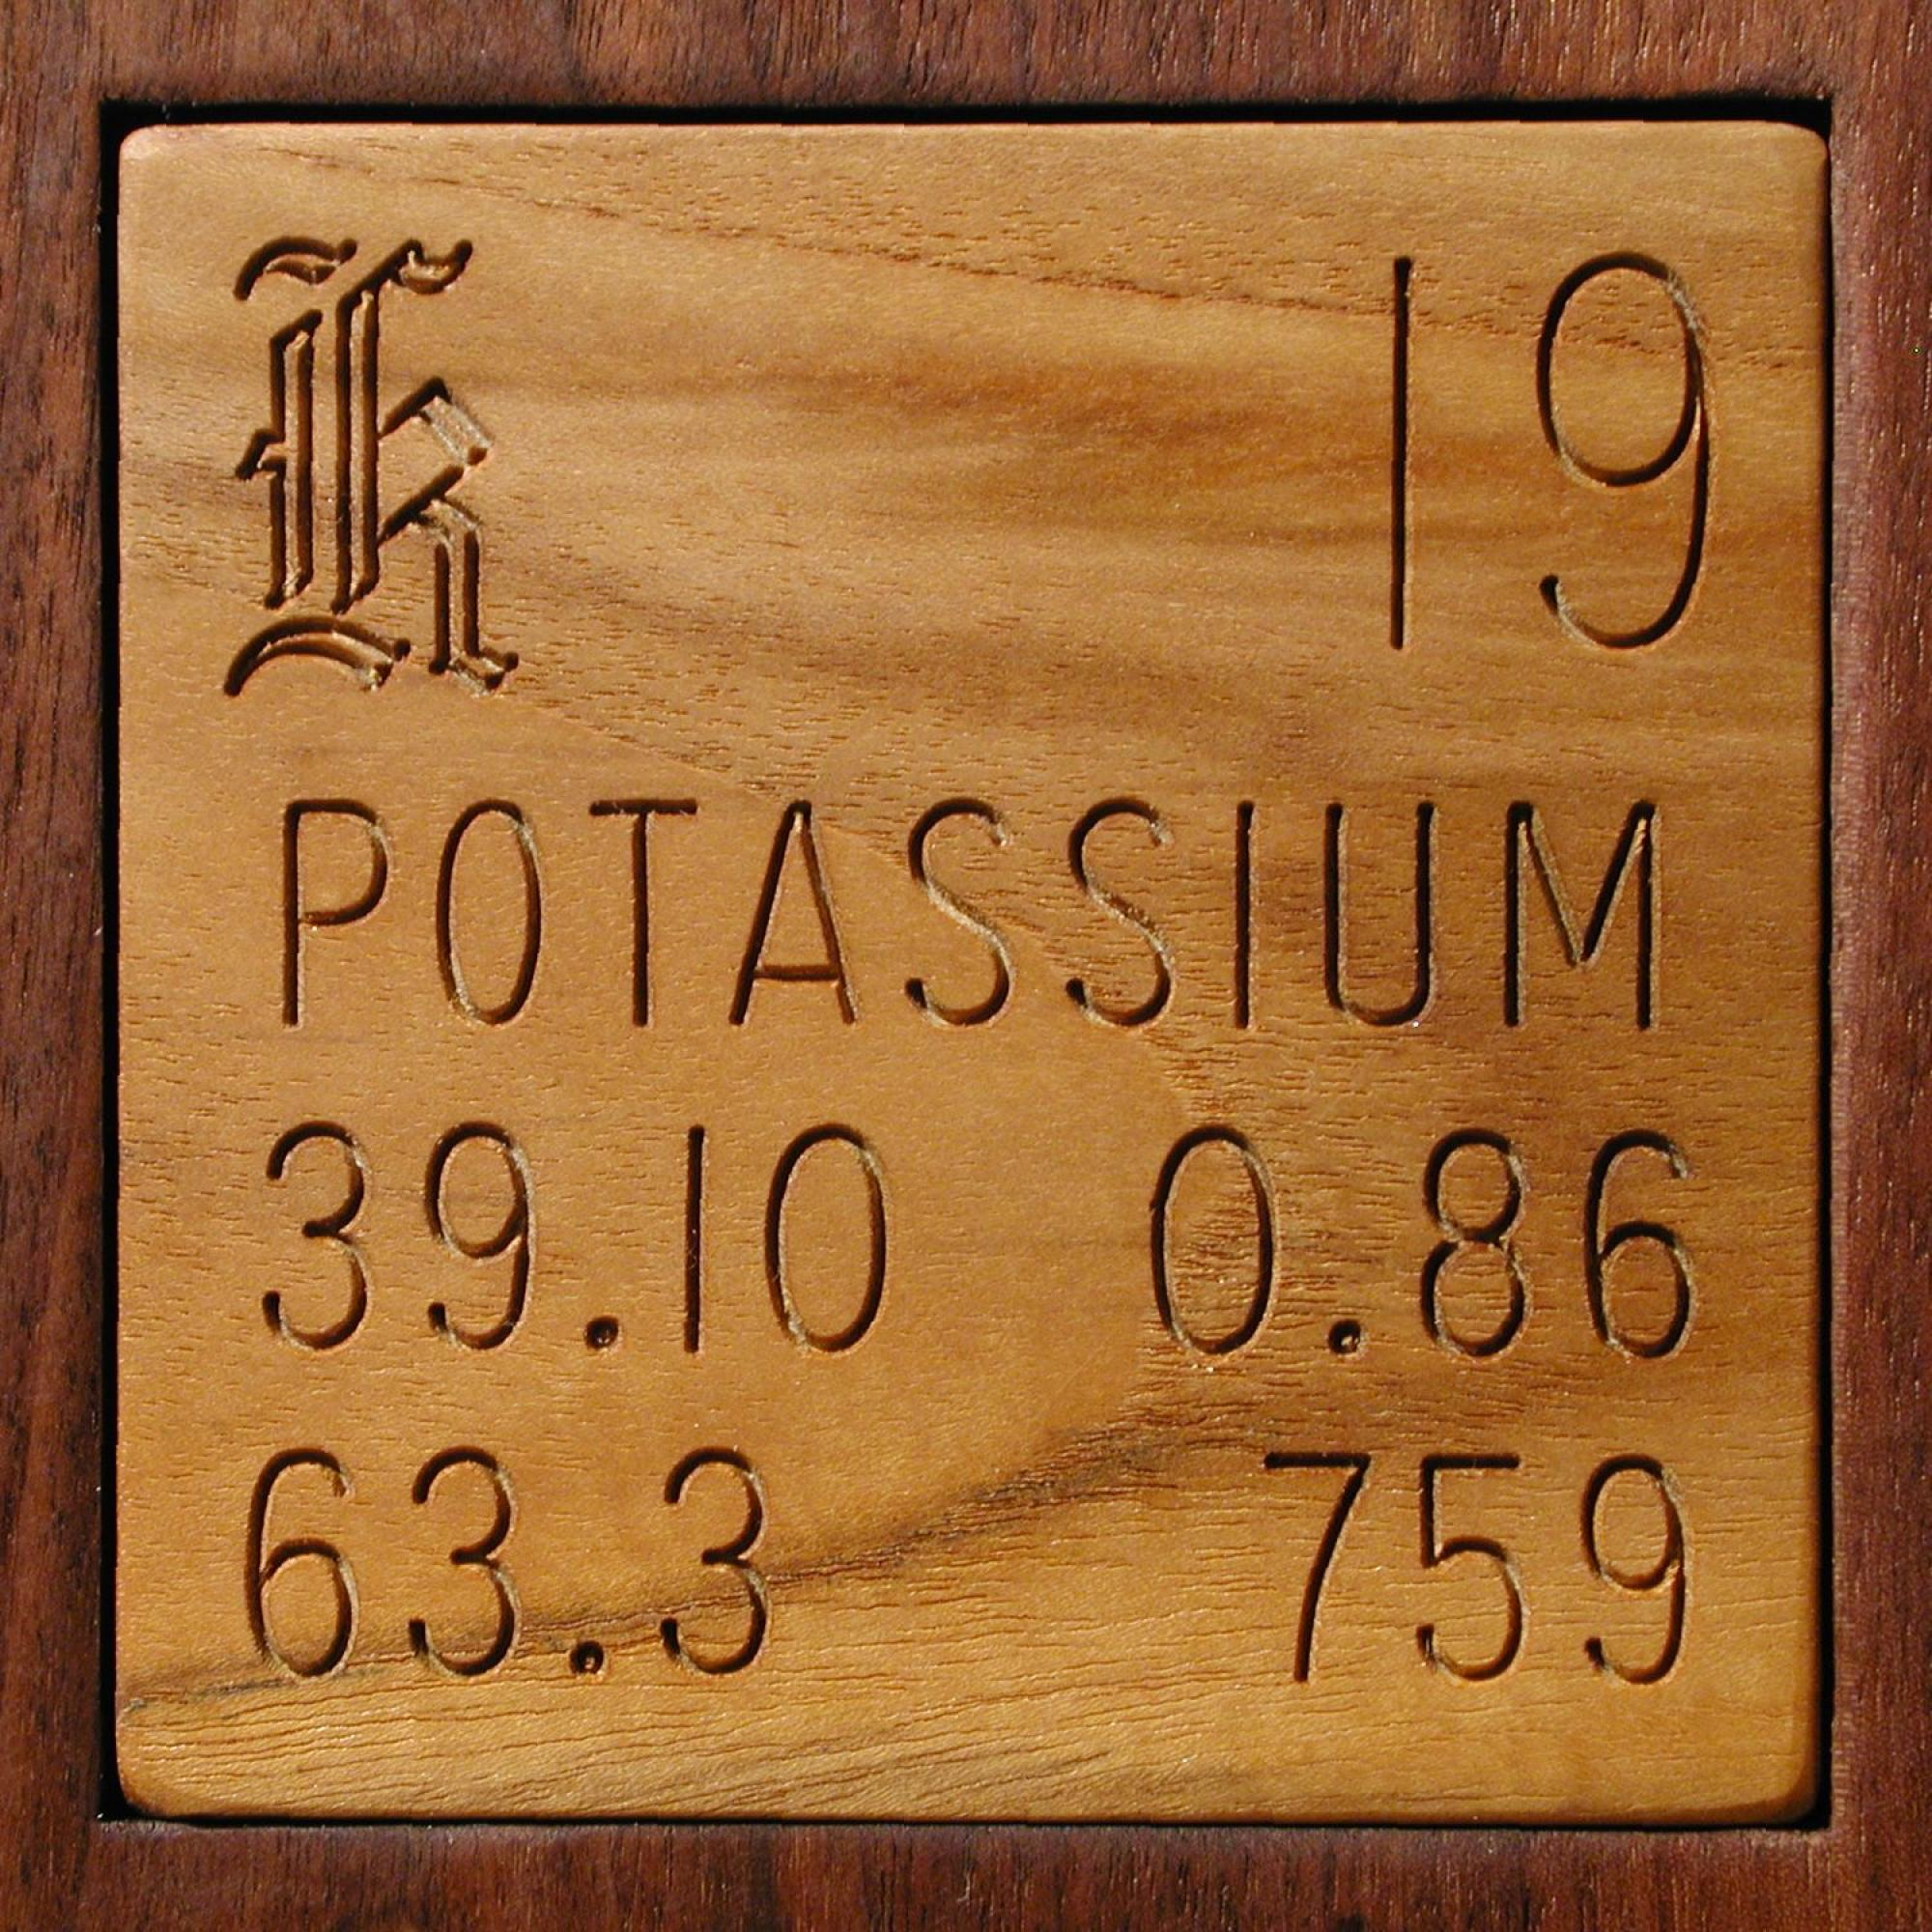 Facts pictures stories about the element Potassium in the